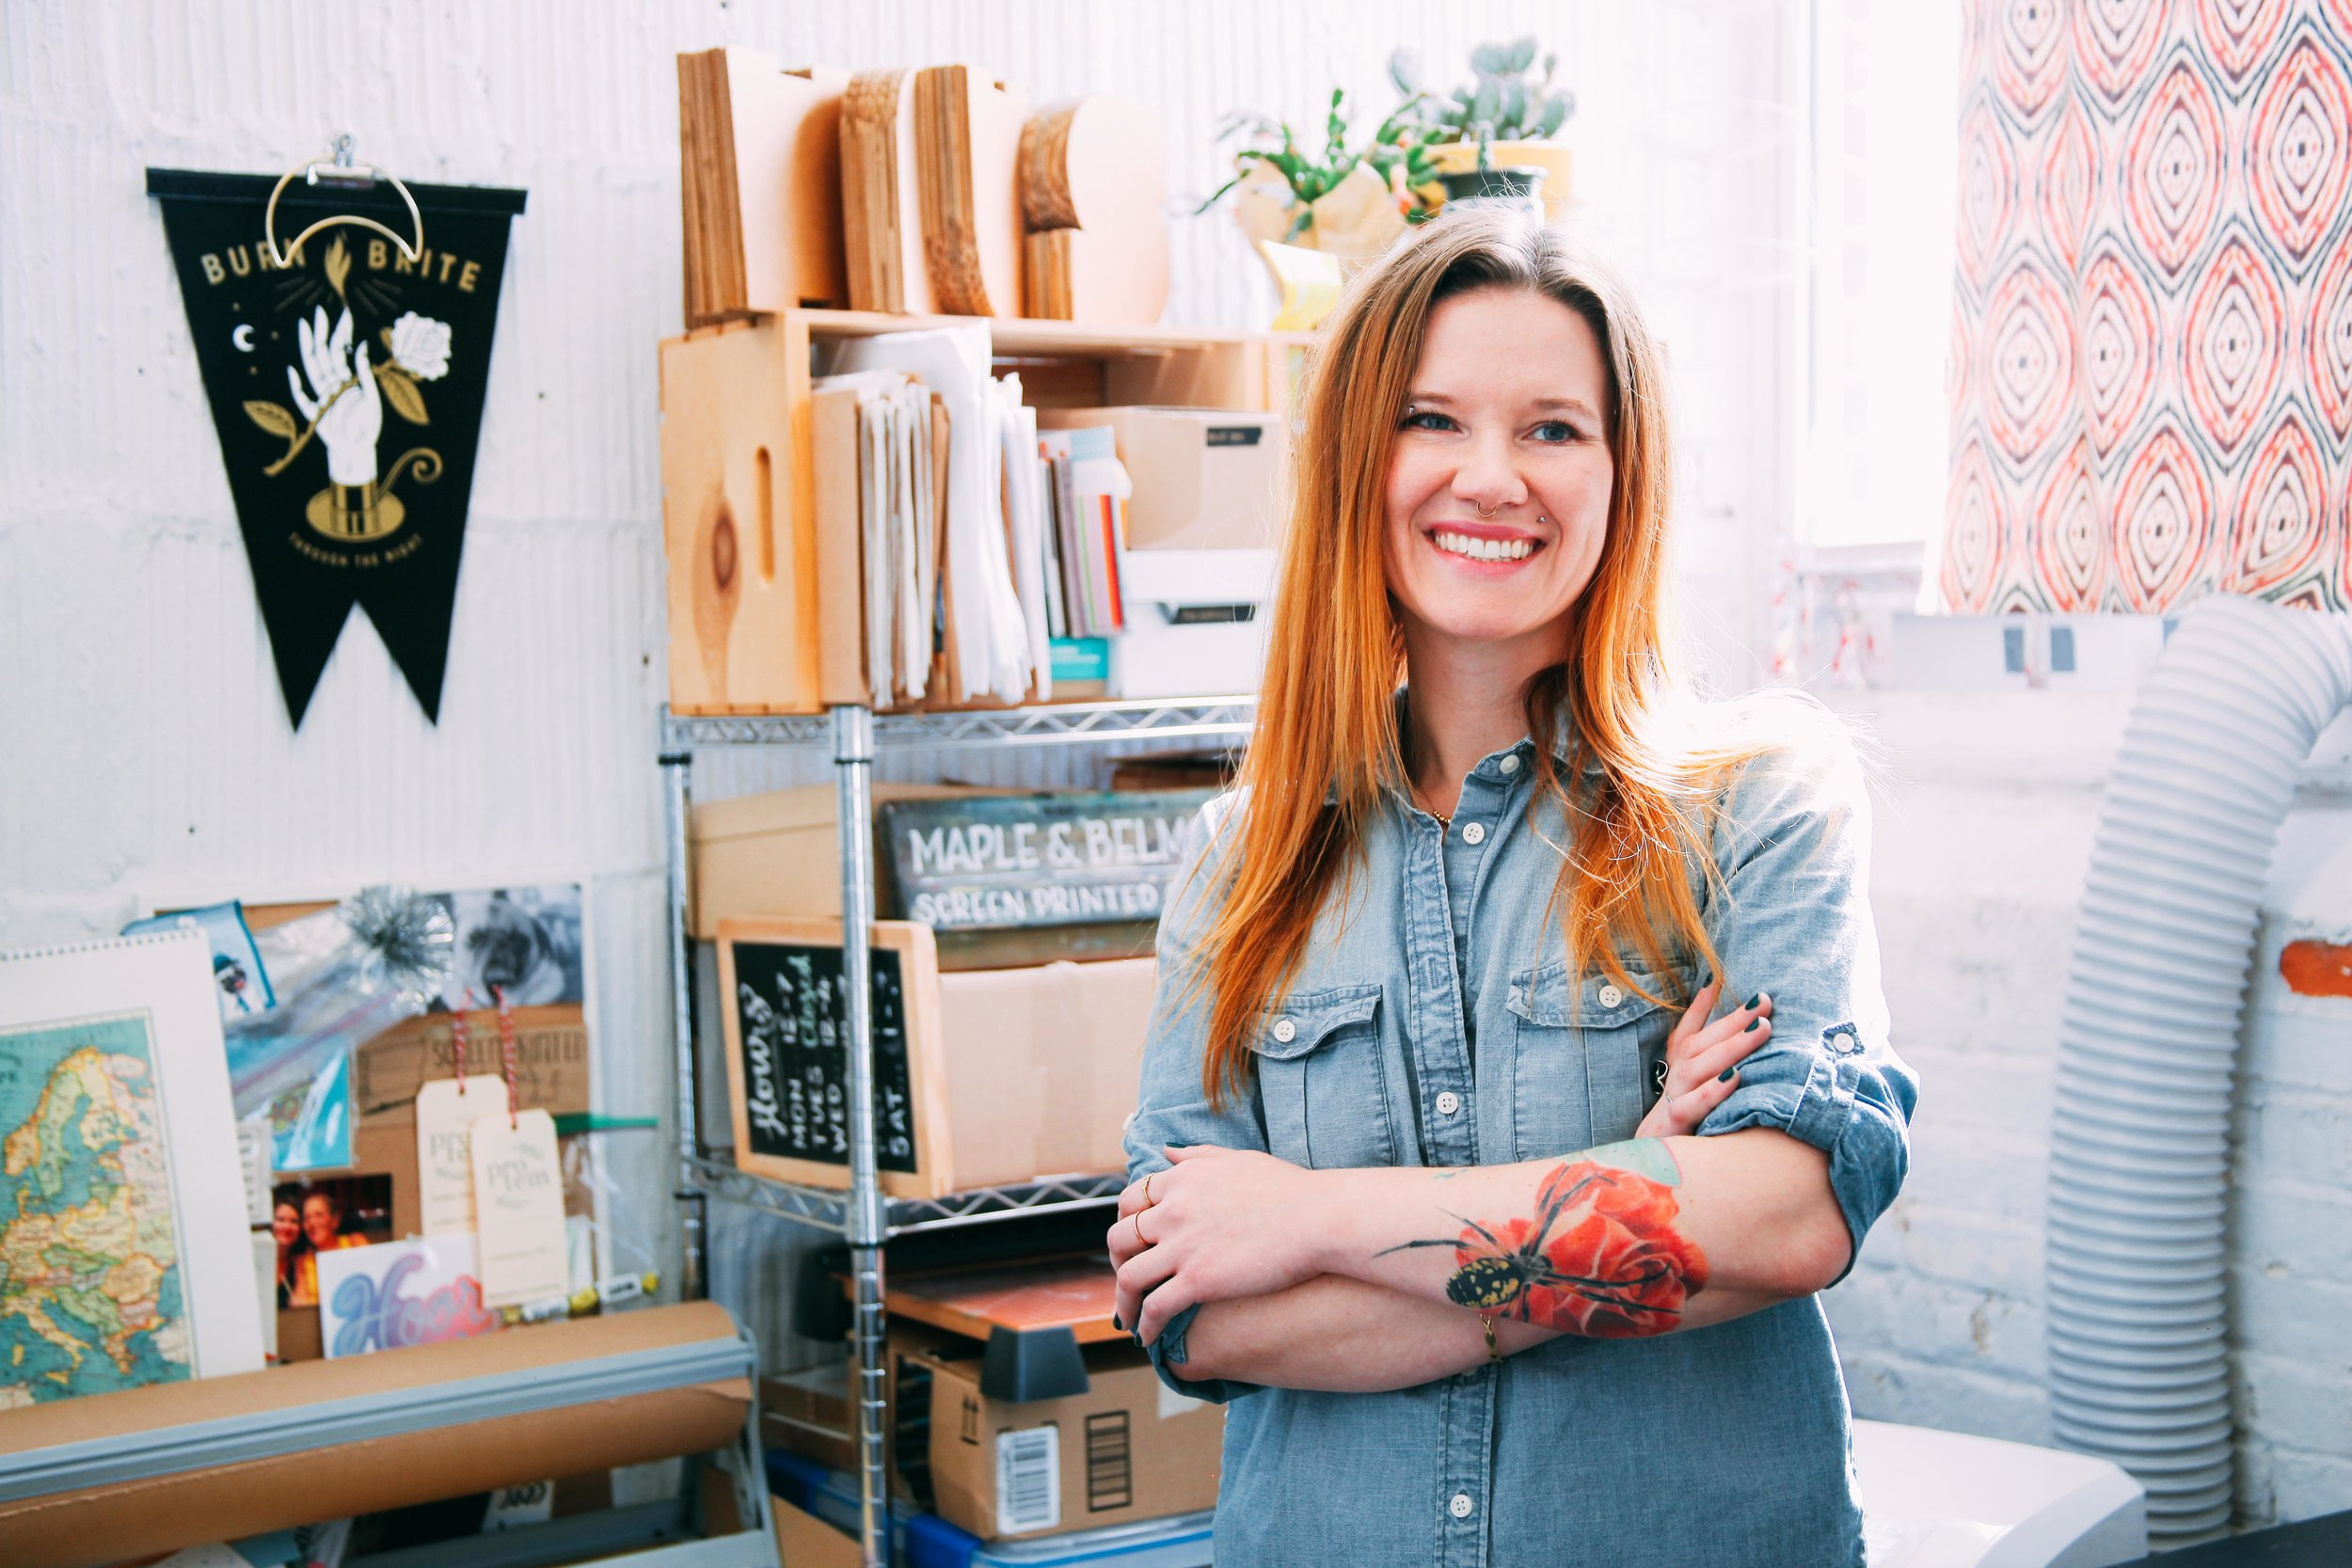 Kimberly Munn is the creative force behind Maple and Belmont, a design studio based in Norfolk, Virginia that specializes in hand lettering. Maple and Belmont was born out of a dream to create stationery and other paper products with our own two hands. So in the fall of 2012, we rekindled our love of screen printing and got to work. Starting out primarily designing and screen printing stationery but quickly found our talents branching out into custom work that includes wedding invitations, chalkboards, logos, calligraphy services and anything we can get our hands on. Our work features Kimberly's charmingly, witty designs that explore our visual voice through hand-drawn typography and illustration. Our love of letterforms drives us to bring our patrons a level of quality and attention their project deserves. Kimberly also shares her love of hand lettering through several workshops that she teaches locally.